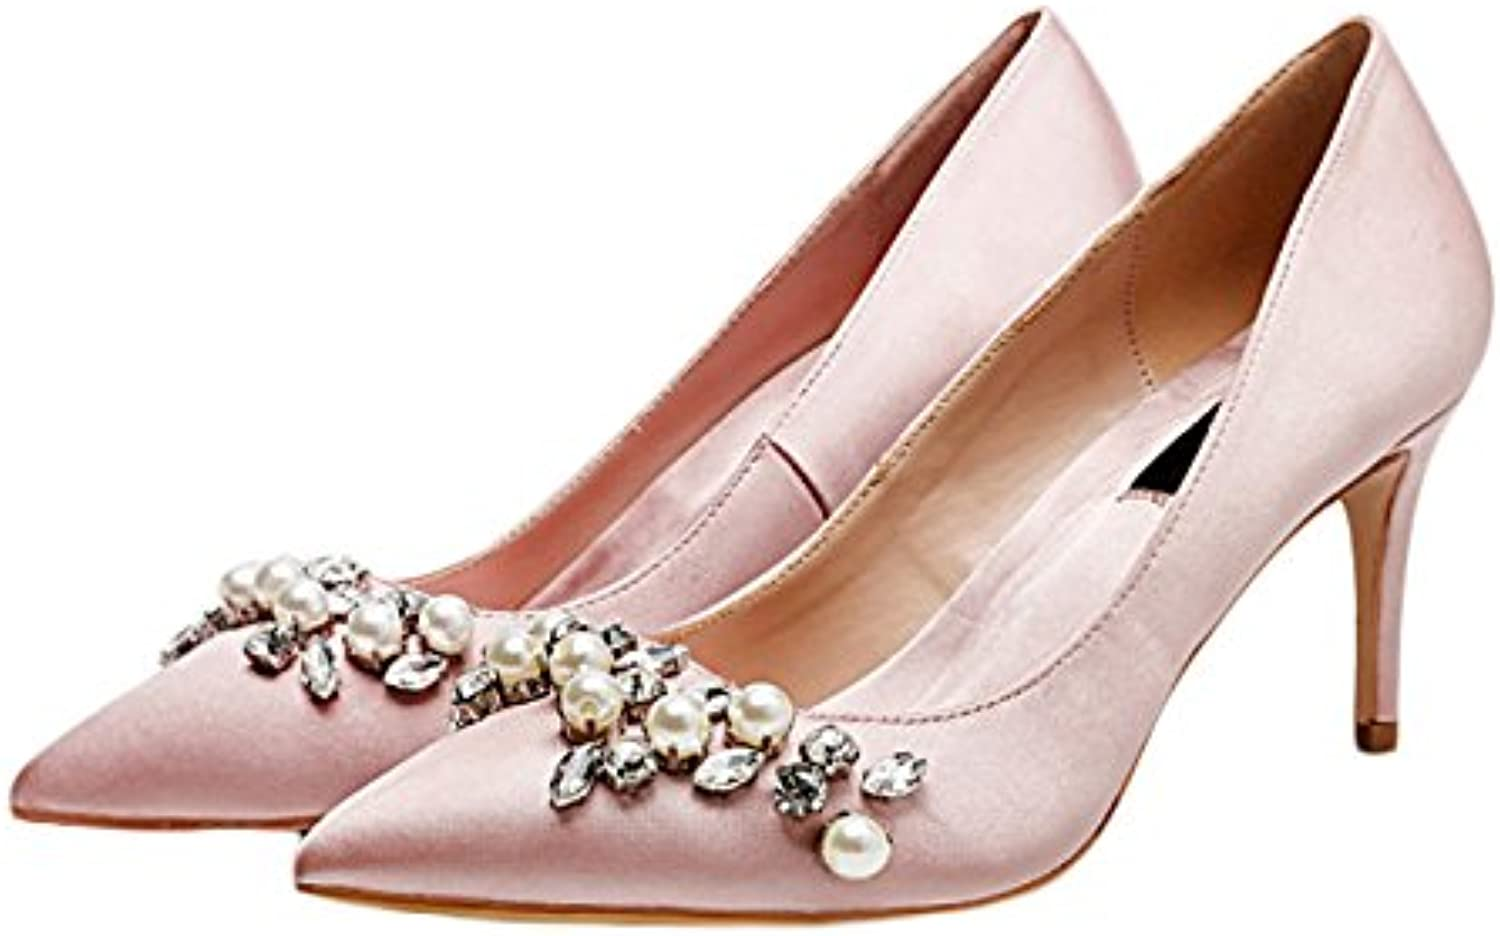 8d1f87735a1a Woman Woman Woman Silver High Heels Fashion Sexy Work Court Shoes Wedding  Rhinestone Pearl Satin Shoes Princess Crystal Shoes... B07CR13WCY Parent  a745ec